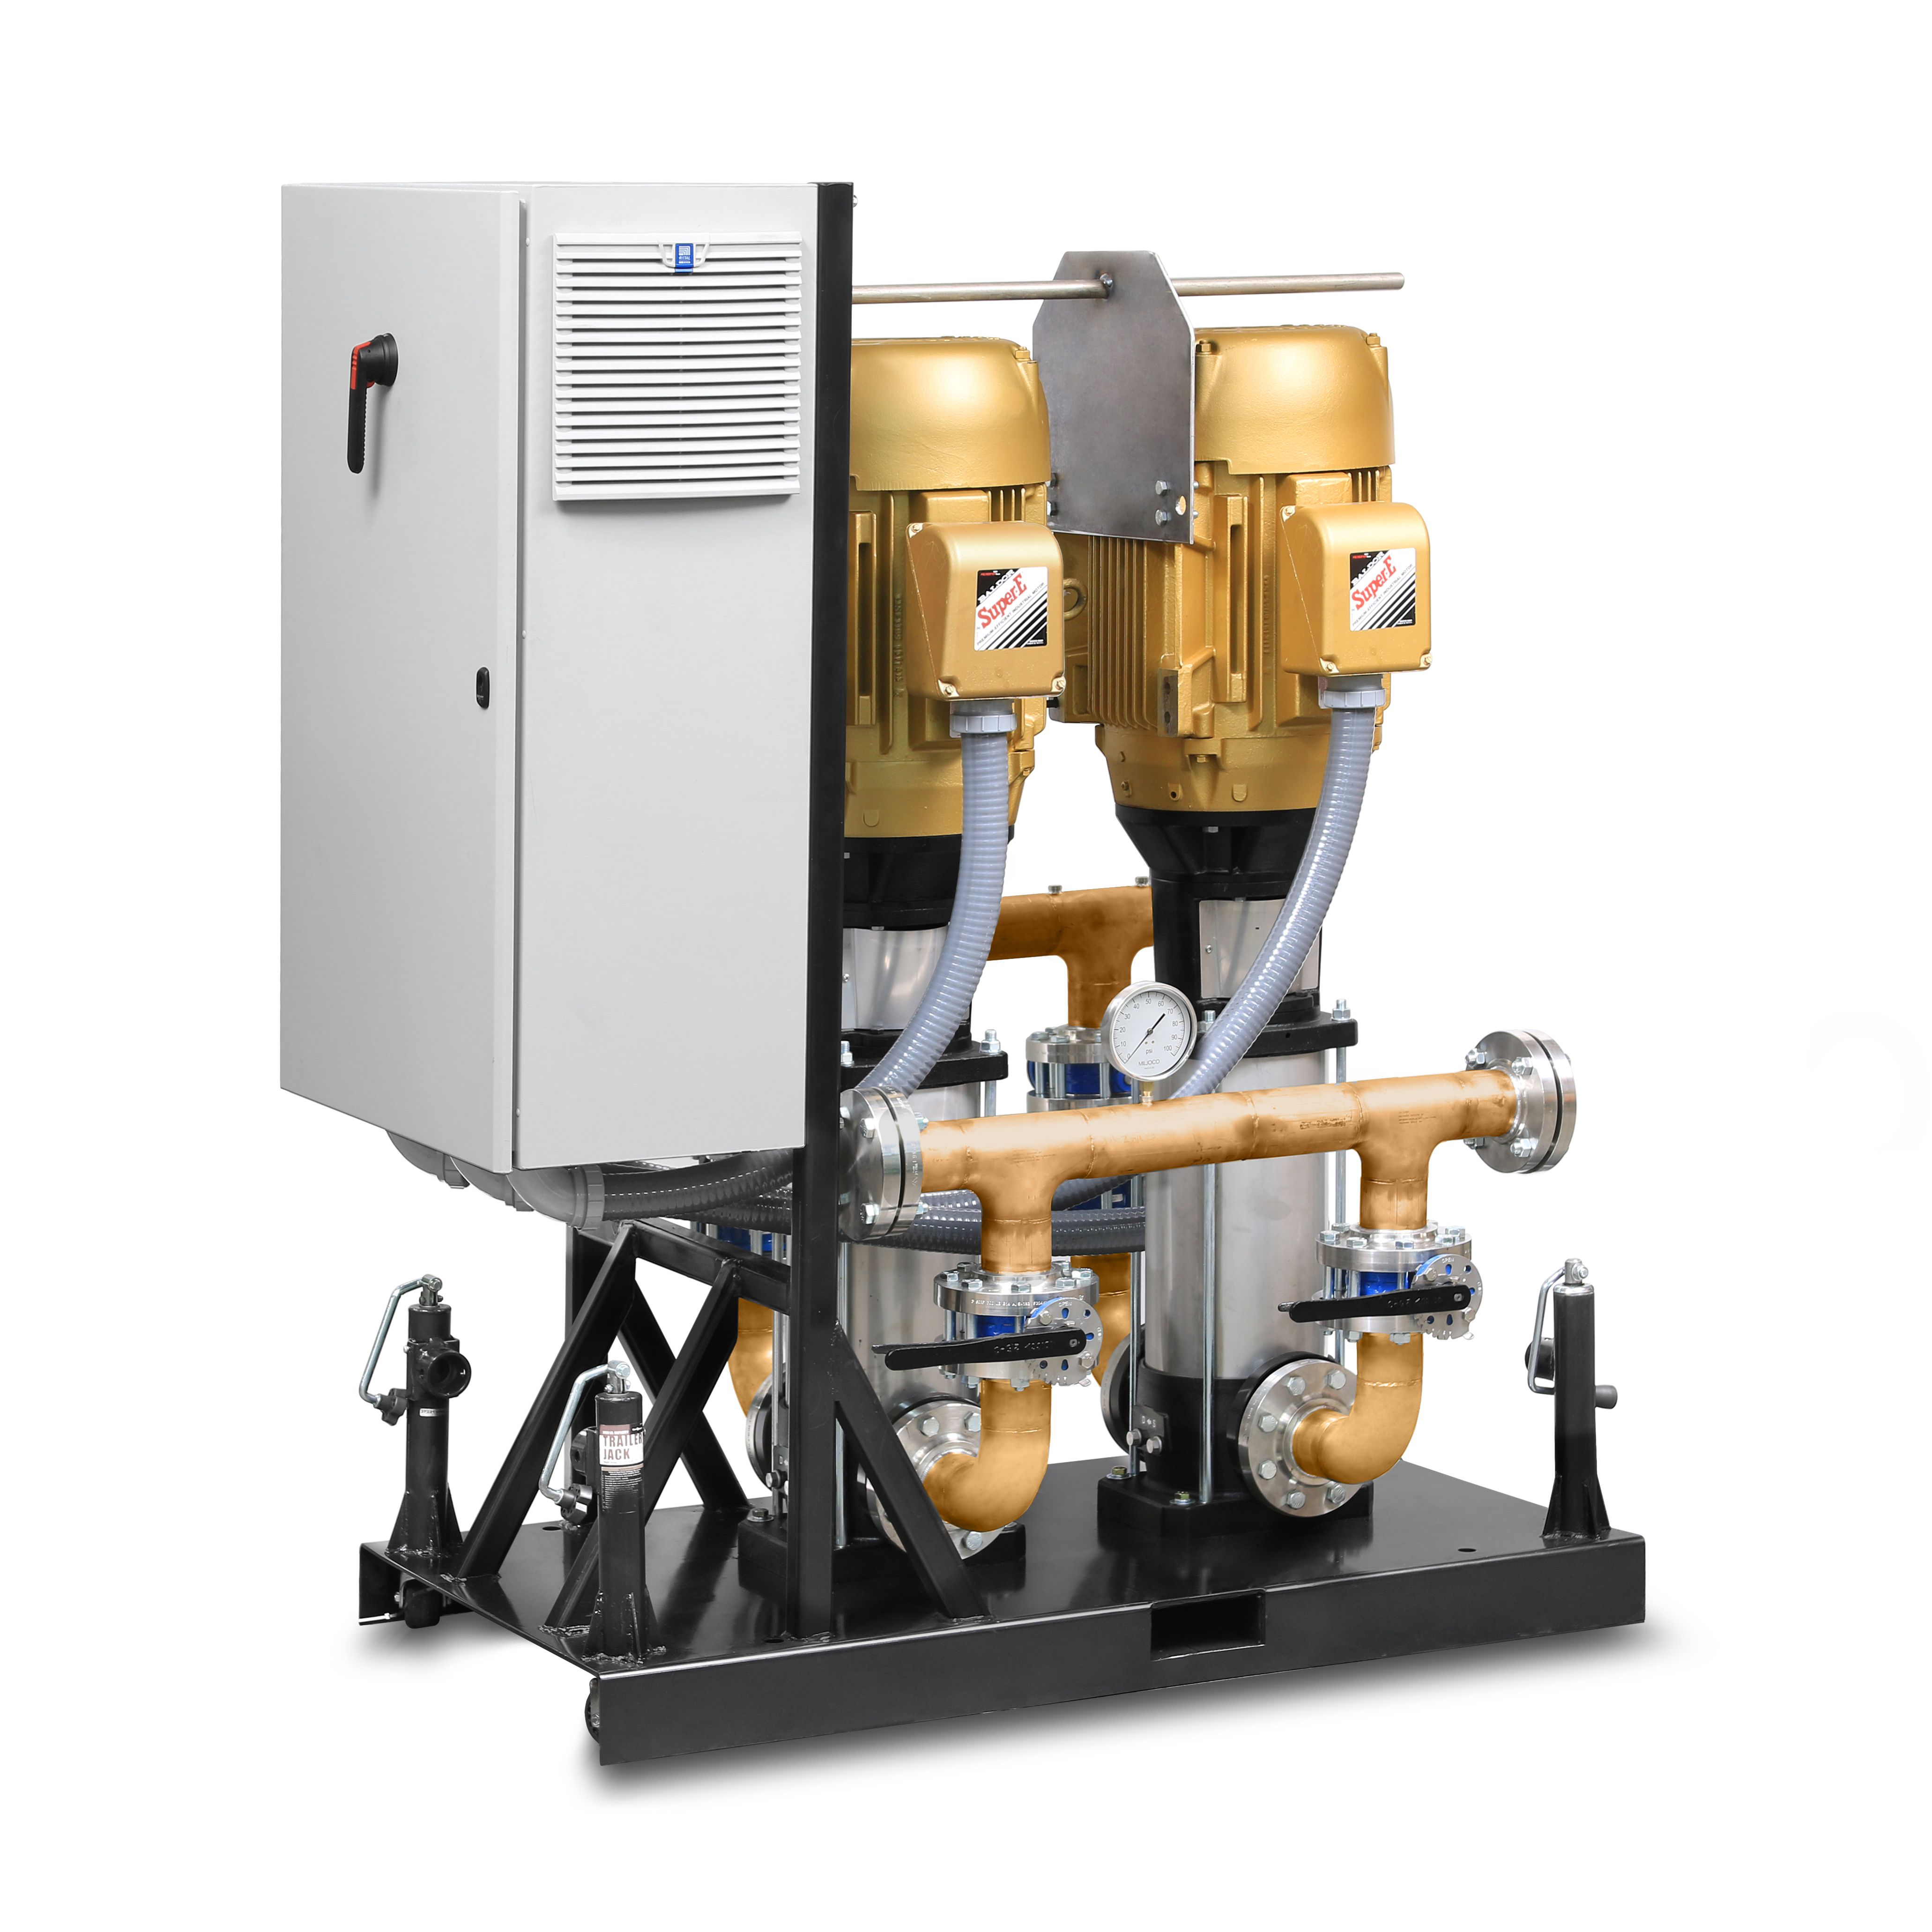 Domestic Water Pressure Booster Pumps And Systems Nyc Pumps